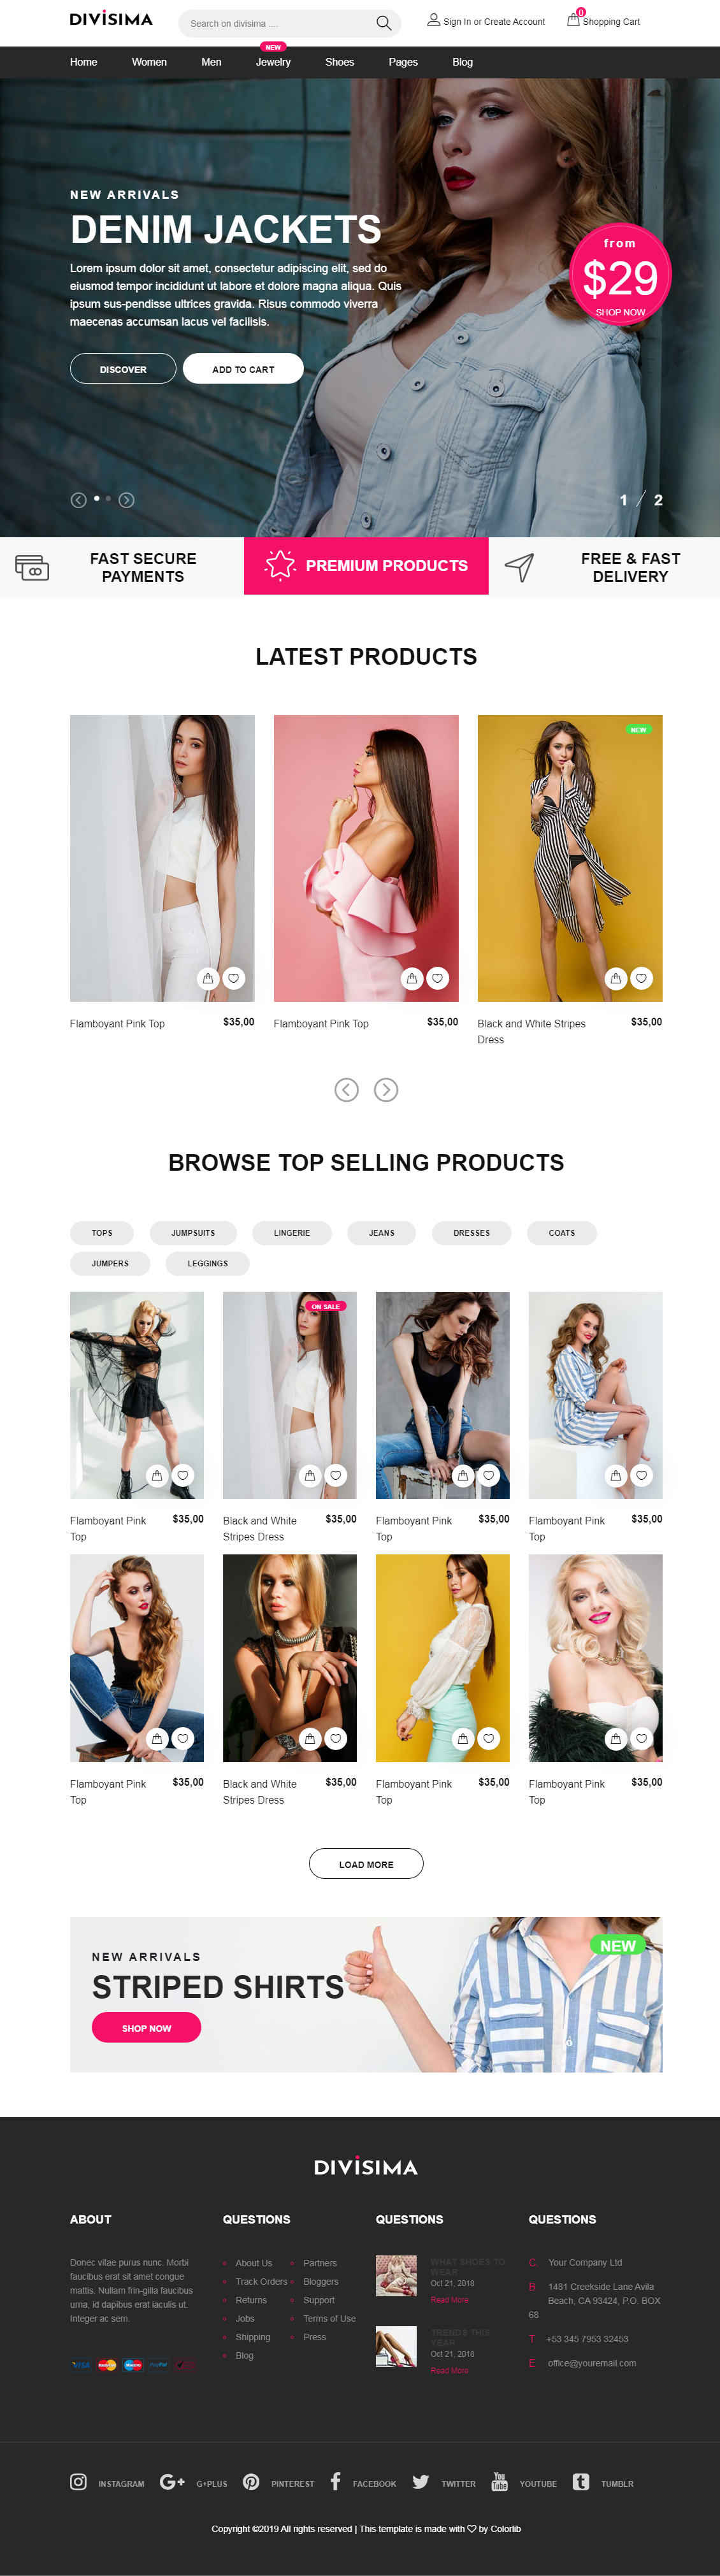 Build a Complete Responsive Ecommerce Website With Free Or Premium Themes